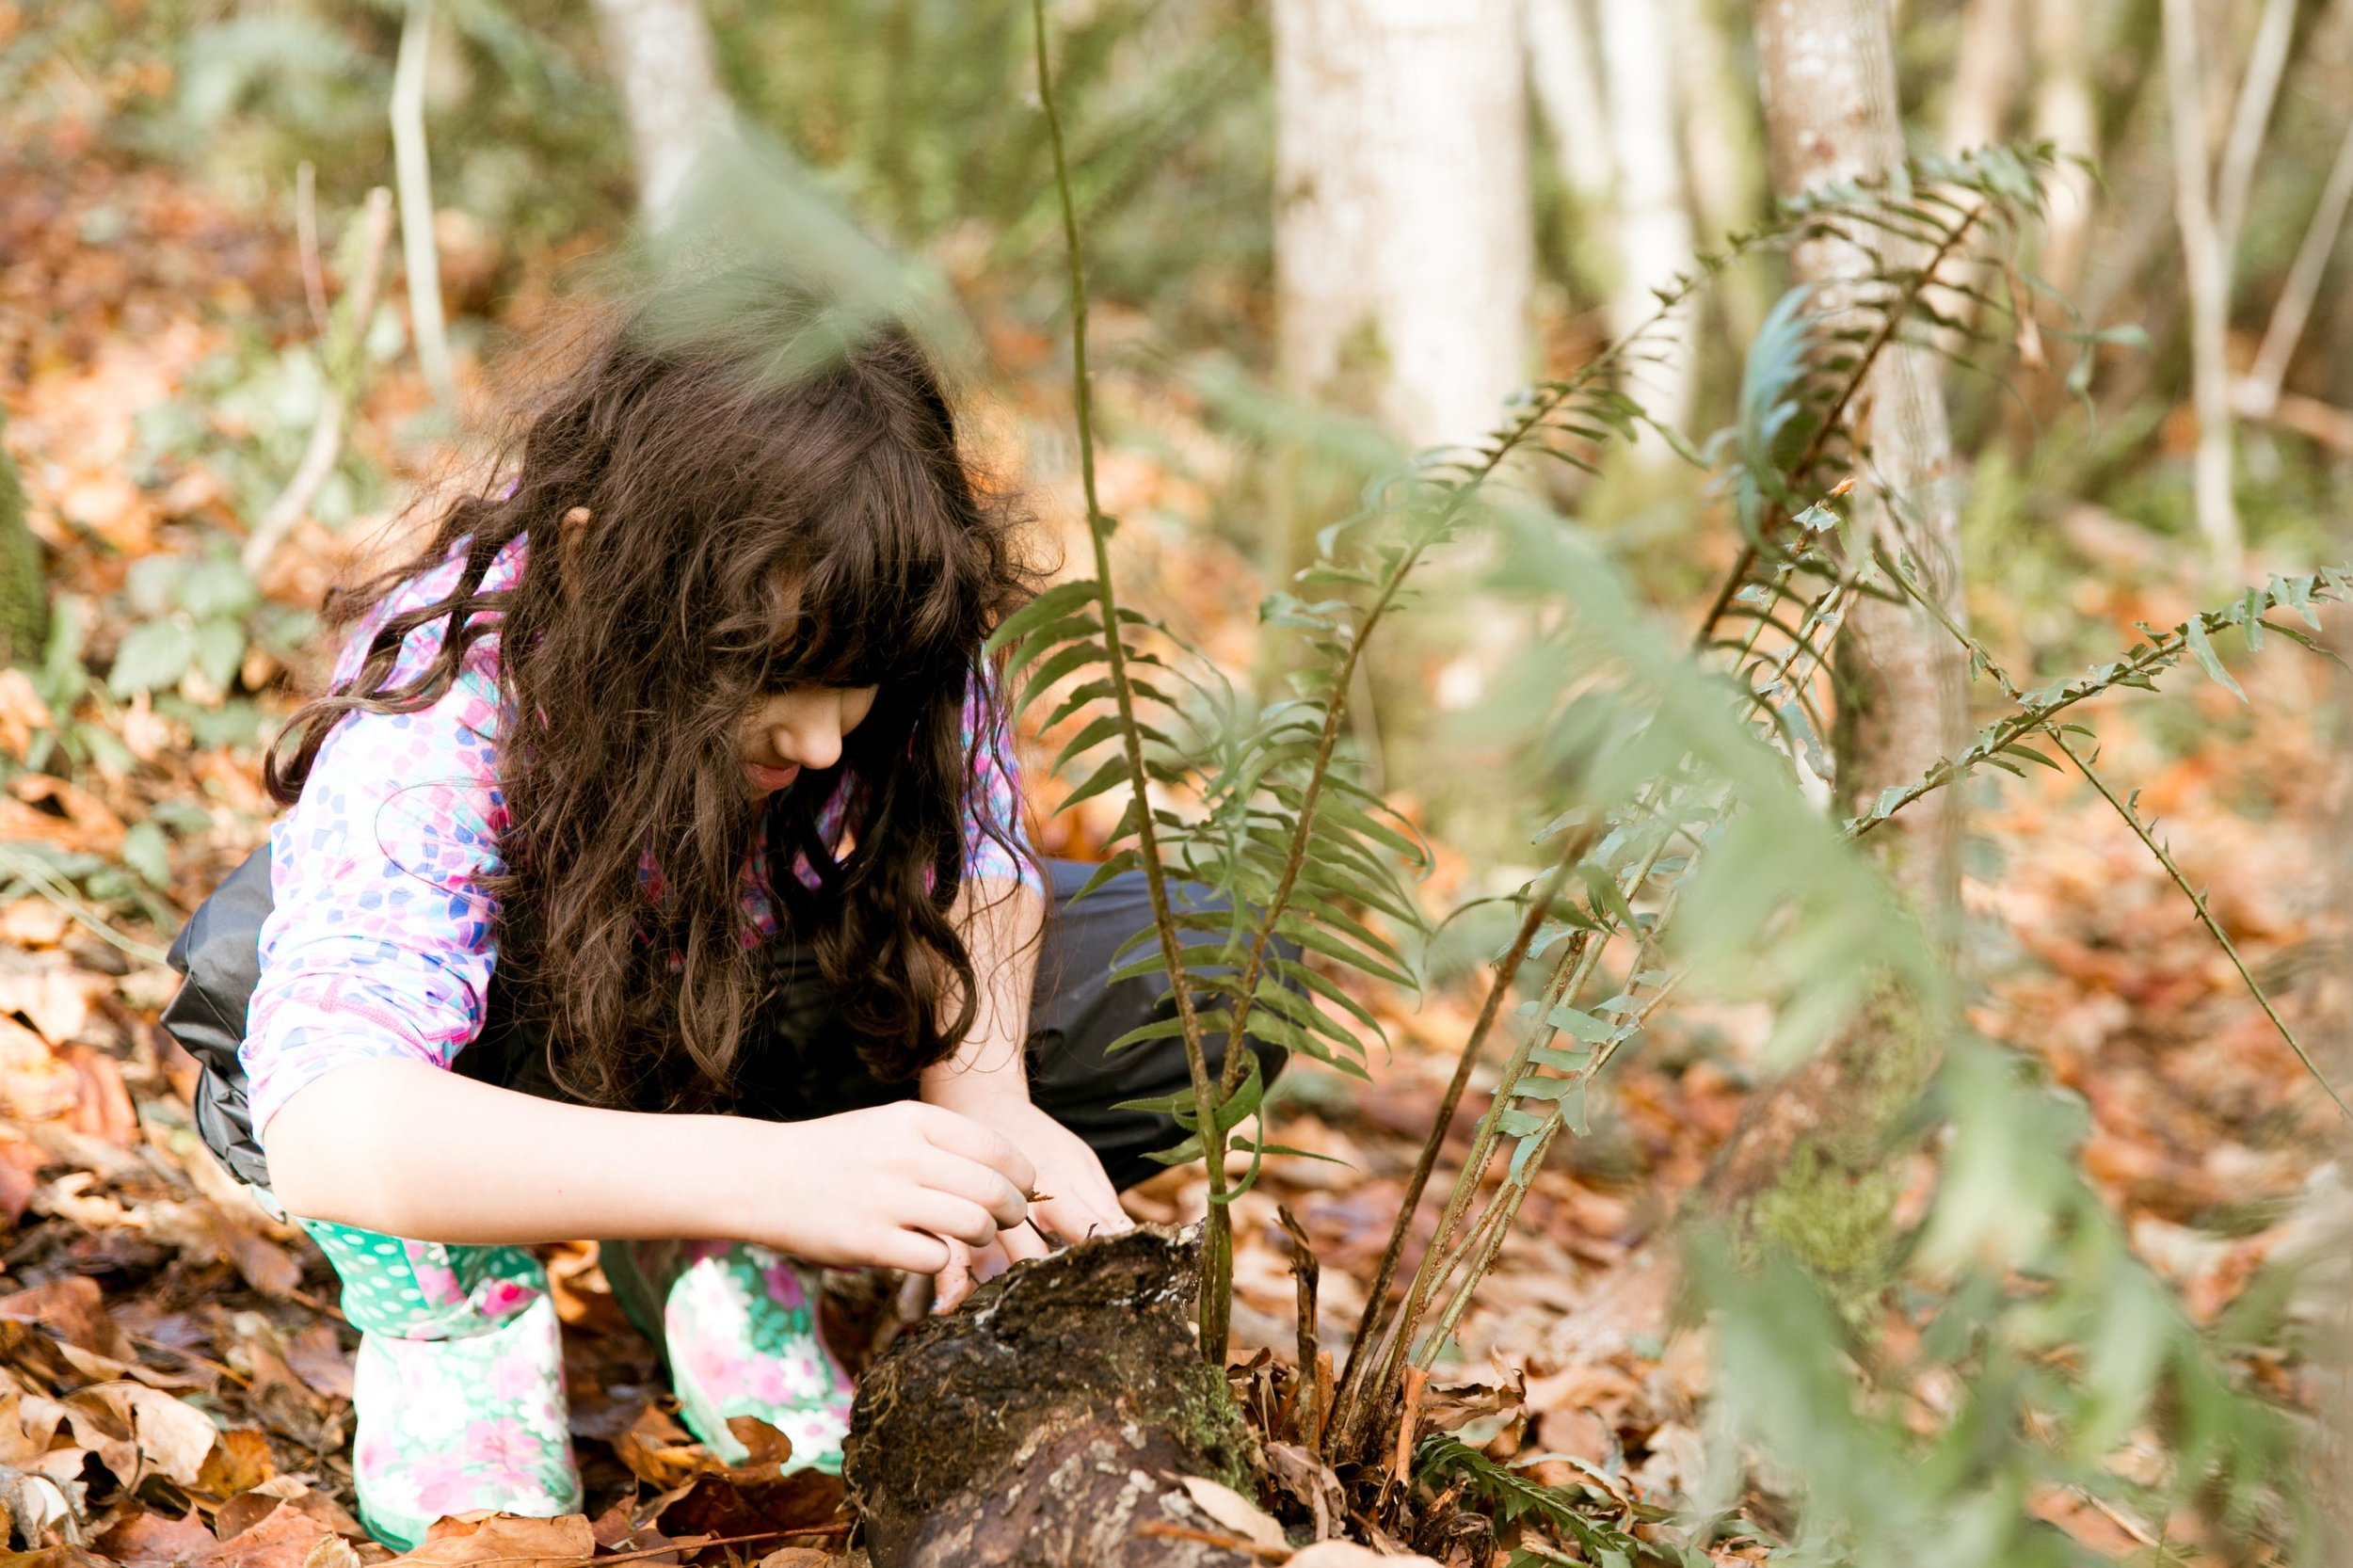 - Natural ScienceWhen children's authentic curiosity leads to their own experiential nature observations and discoveries, it encourages scientific experimentation and conclusion; lessons are understood more fully and the information retained more deeply.